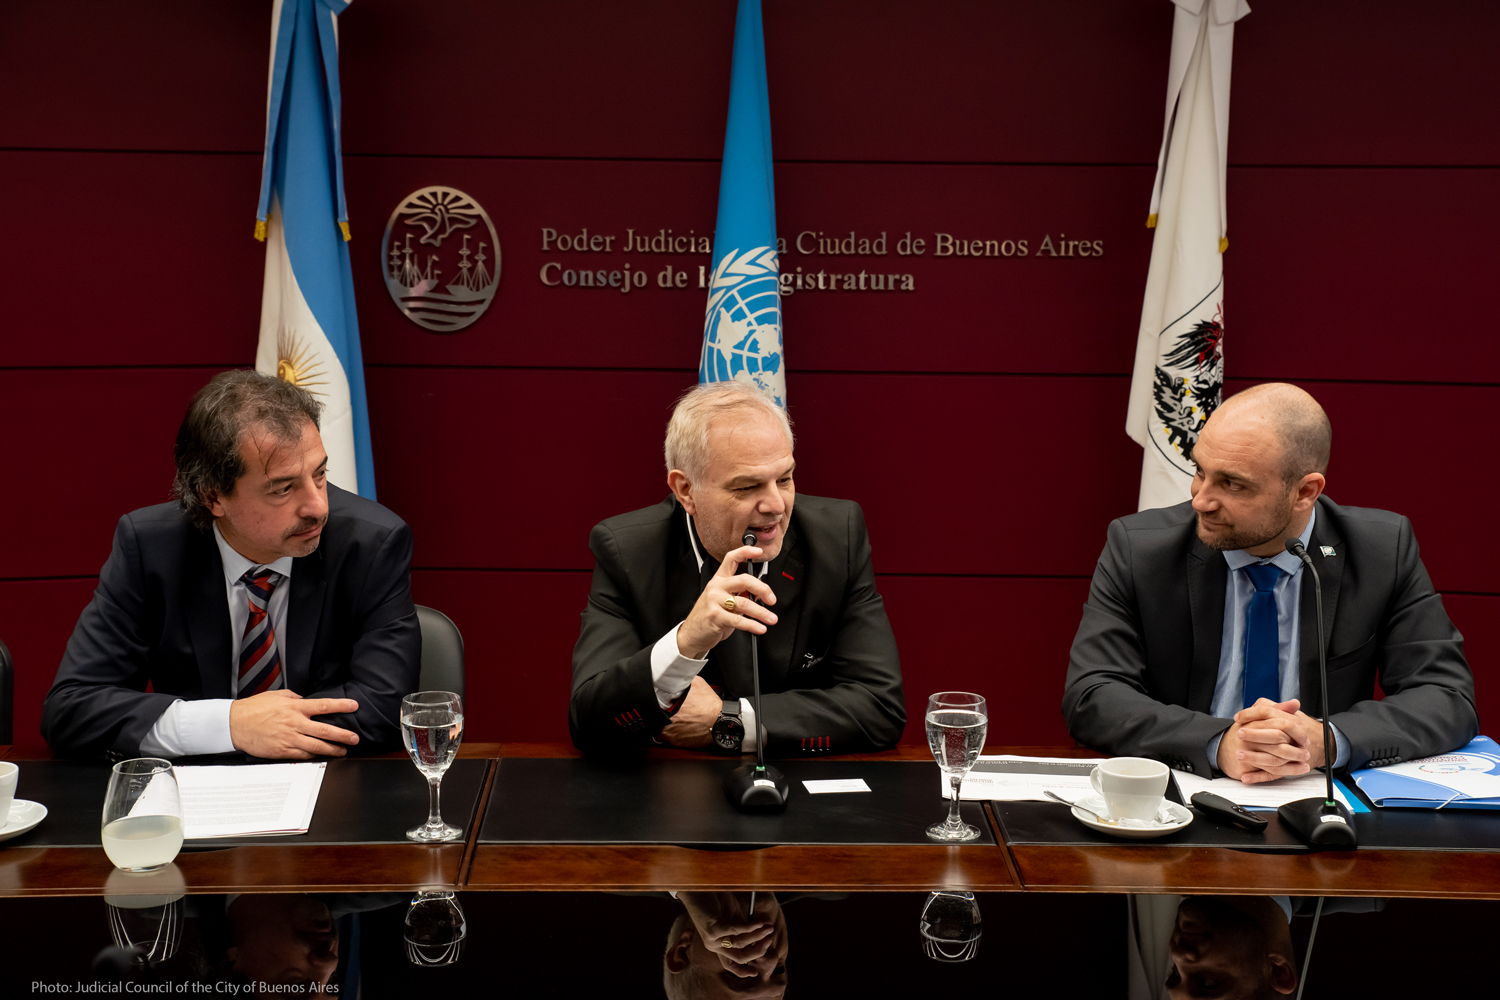 Judicial Council of Buenos Aires to promote rule of law with Global Programme's Ethics Training Tools